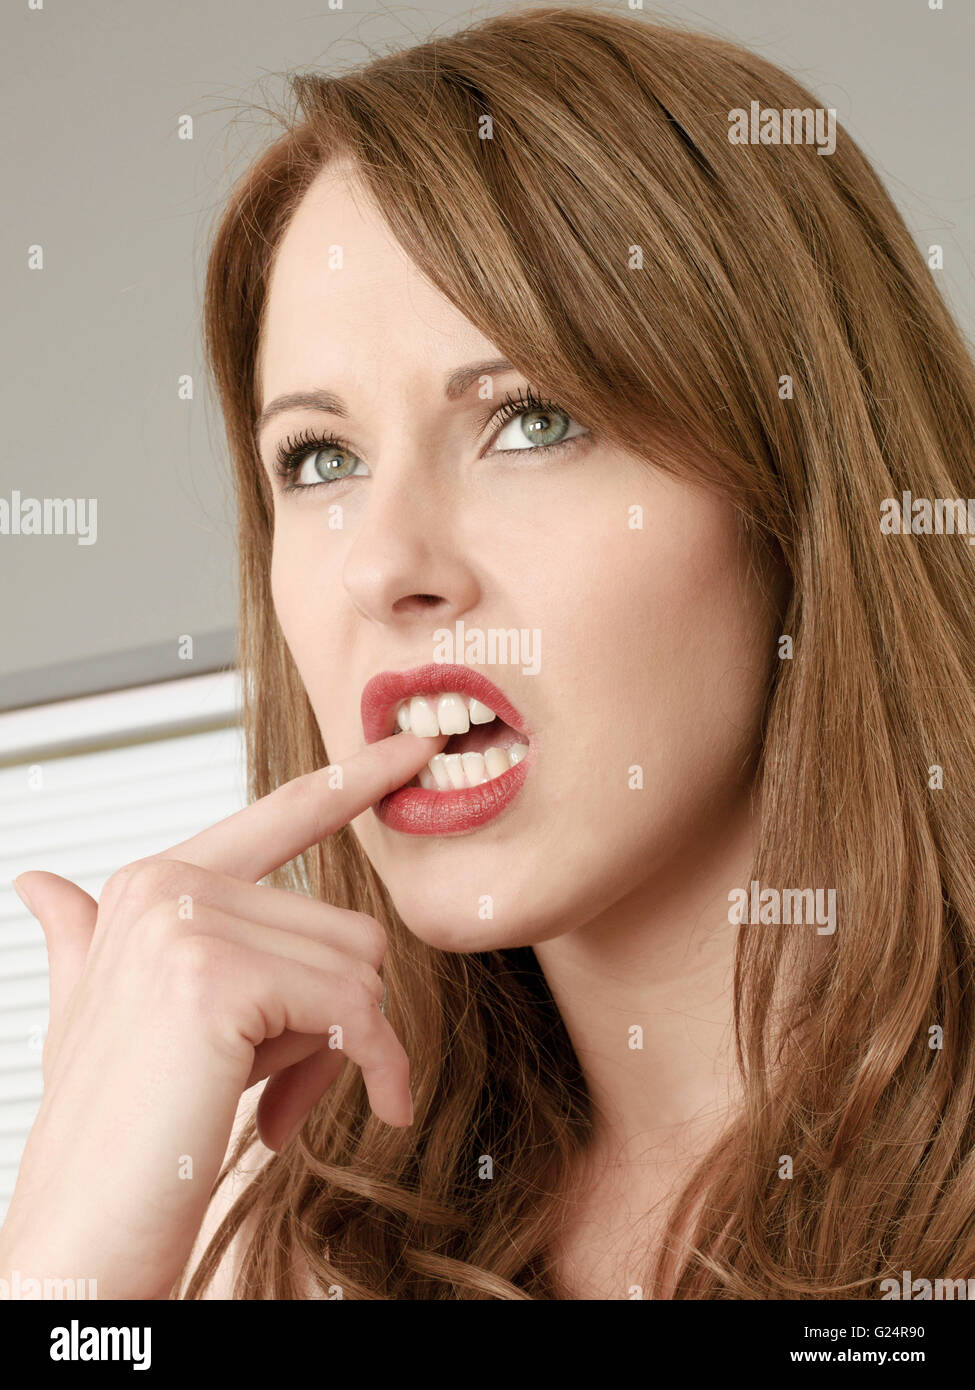 Portrait of a Worried Woman Biting Her Finger Nail Looking Unsure and Nervous - Stock Image